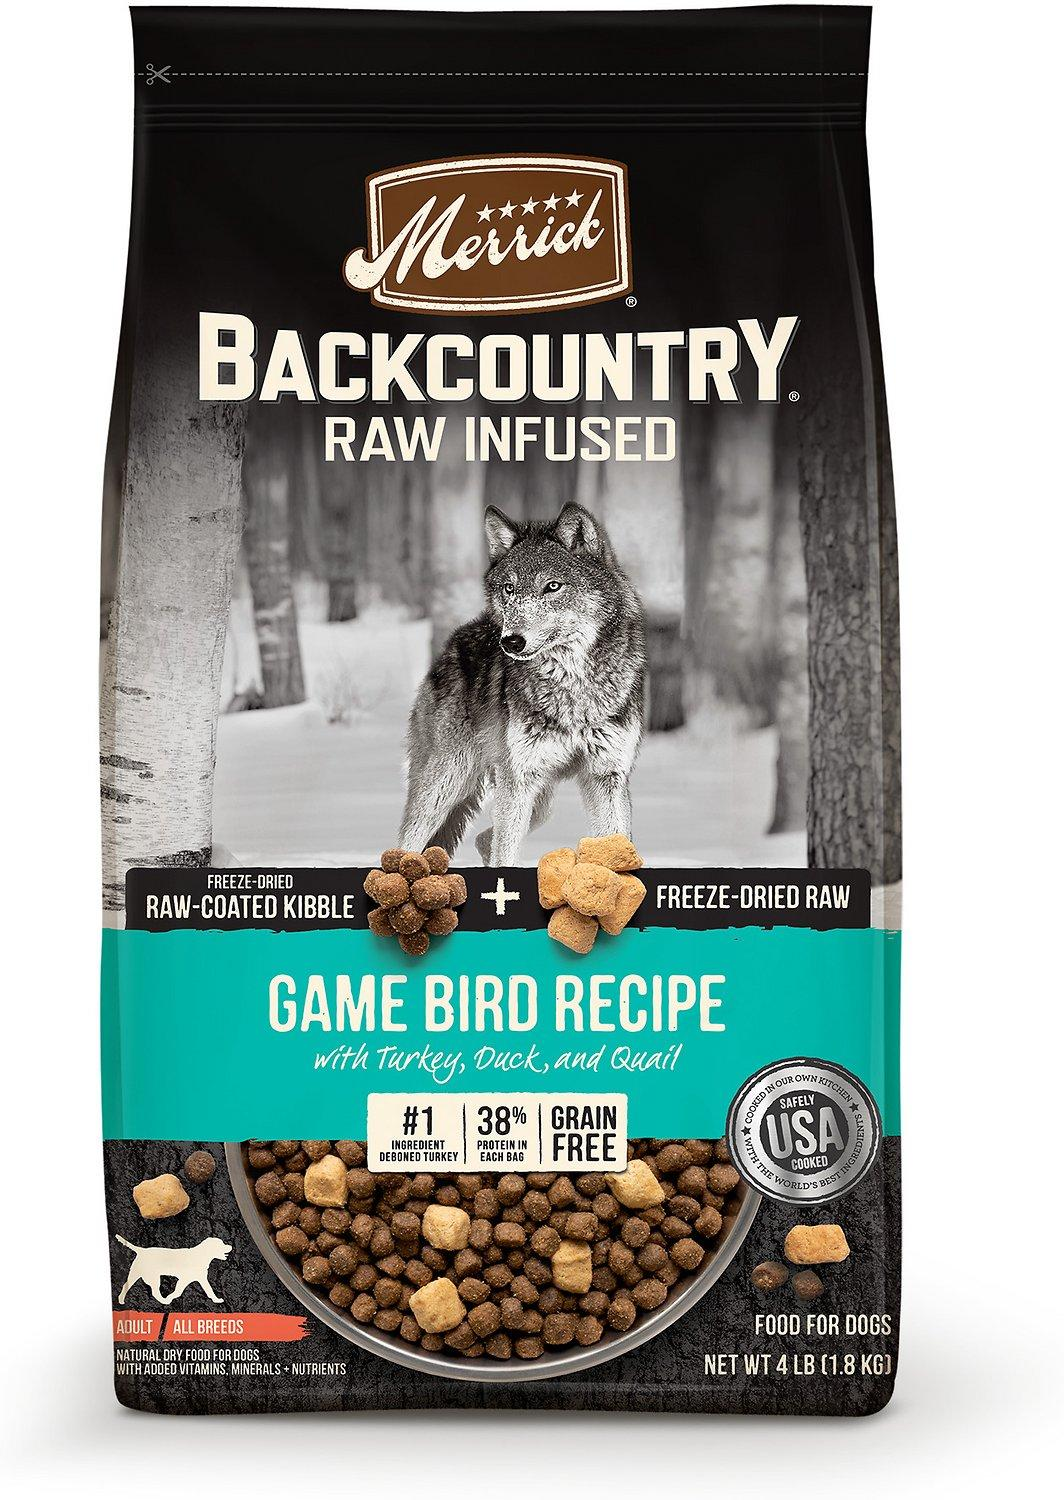 Merrick Backcountry Raw Infused Game Bird Freeze-Dried Dry Dog Food Image